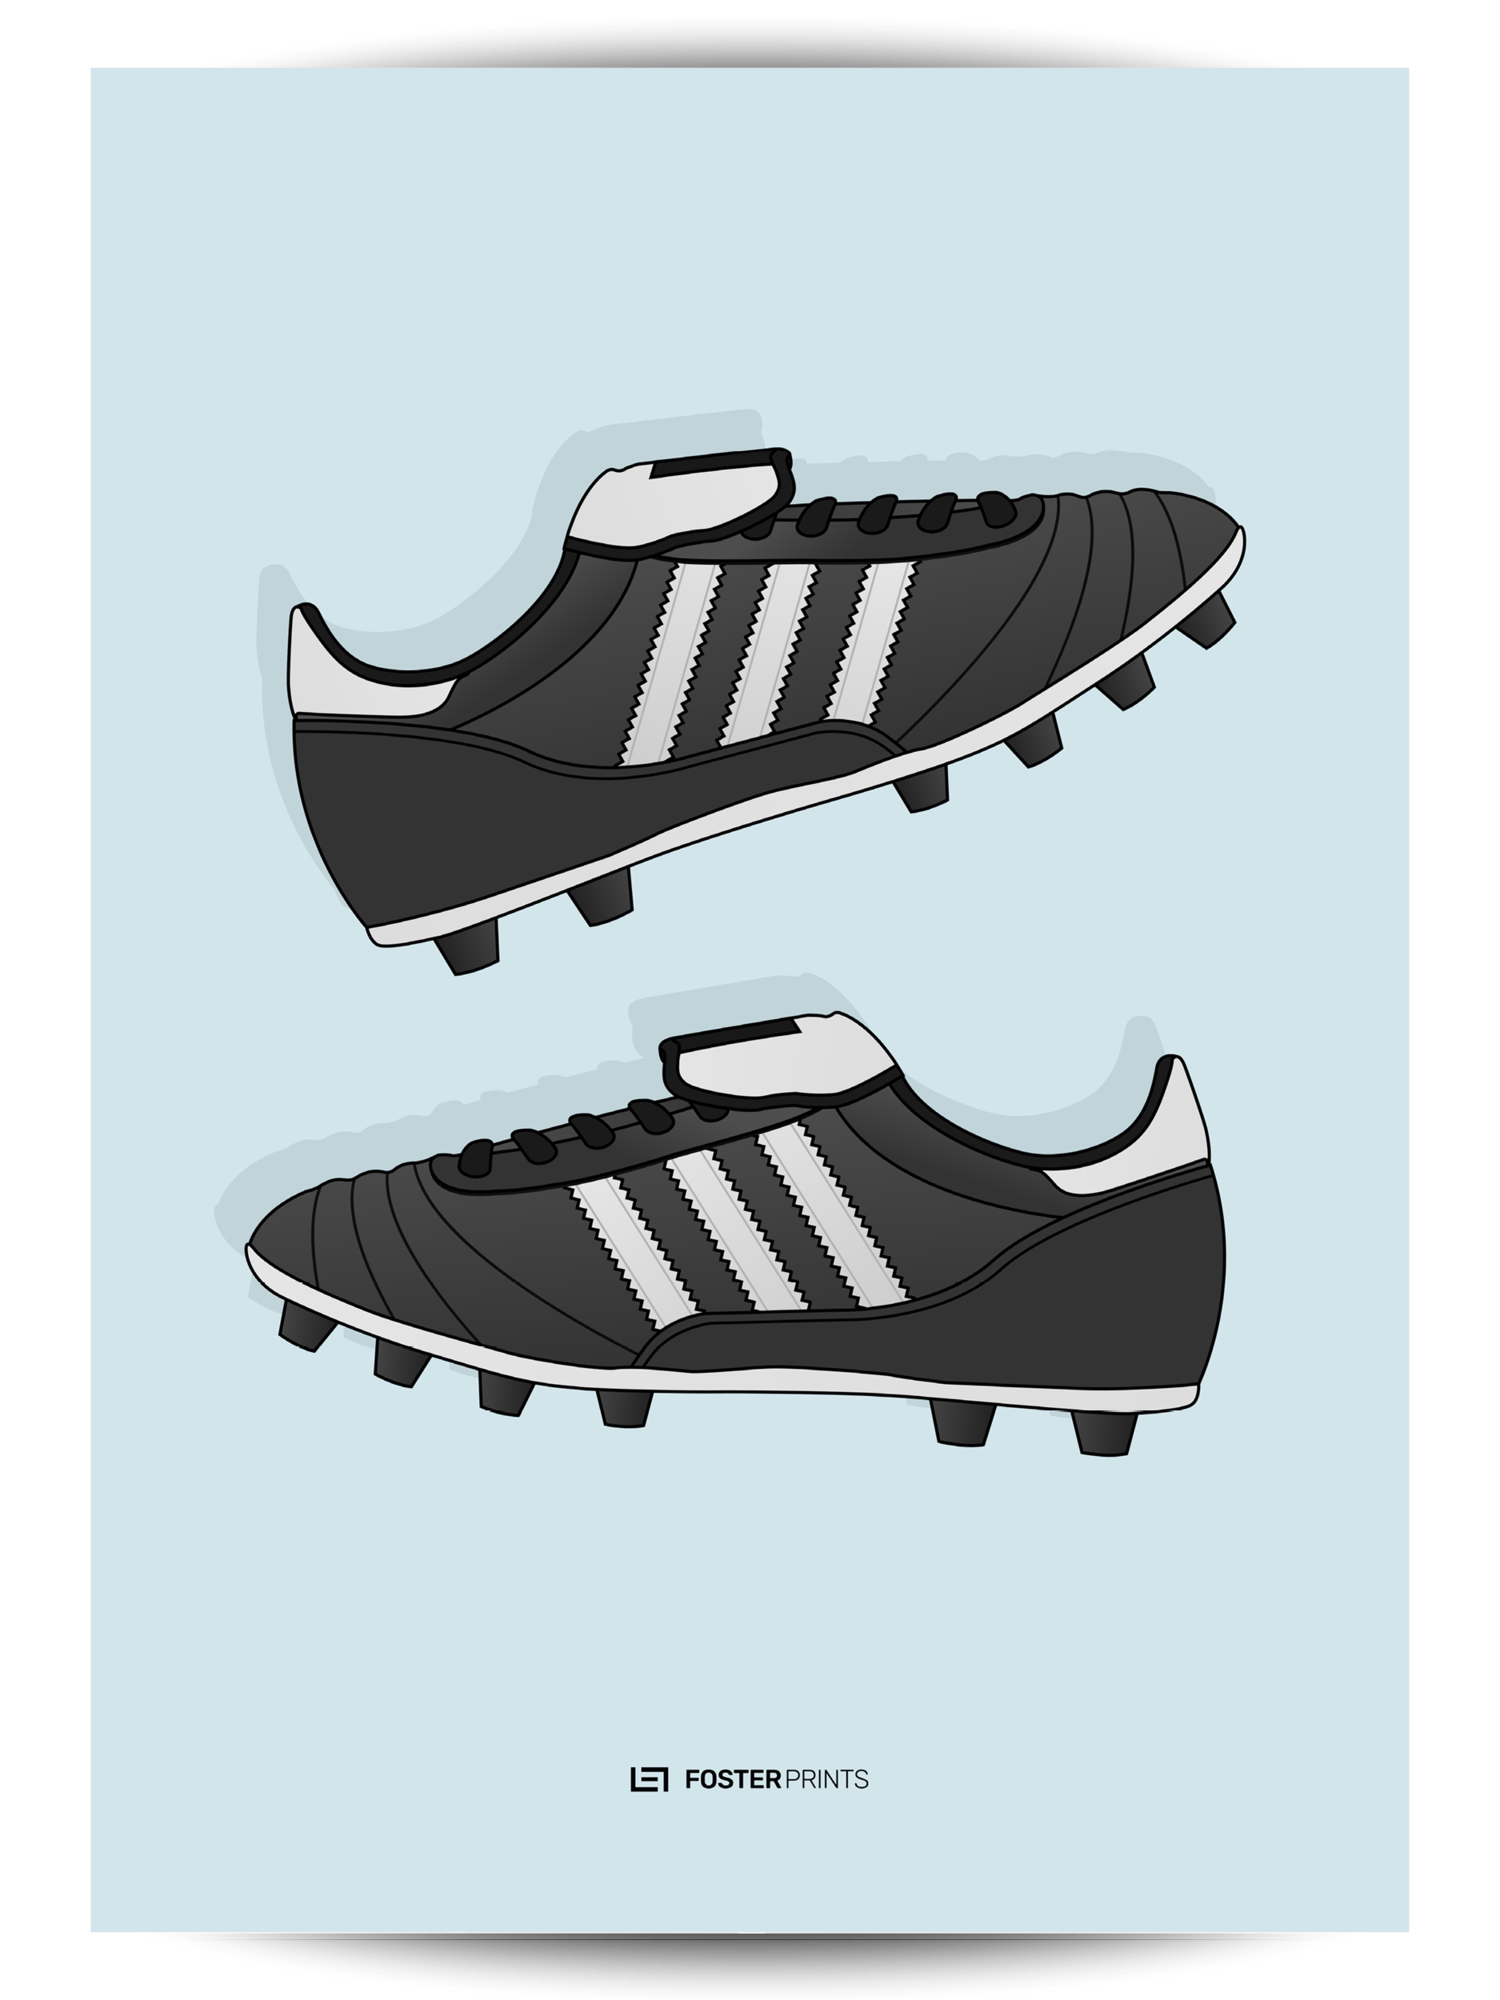 Side view of football cleat clipart svg transparent download Adidas Copa Mundial Football Poster | Pinterest | Mundial football svg transparent download